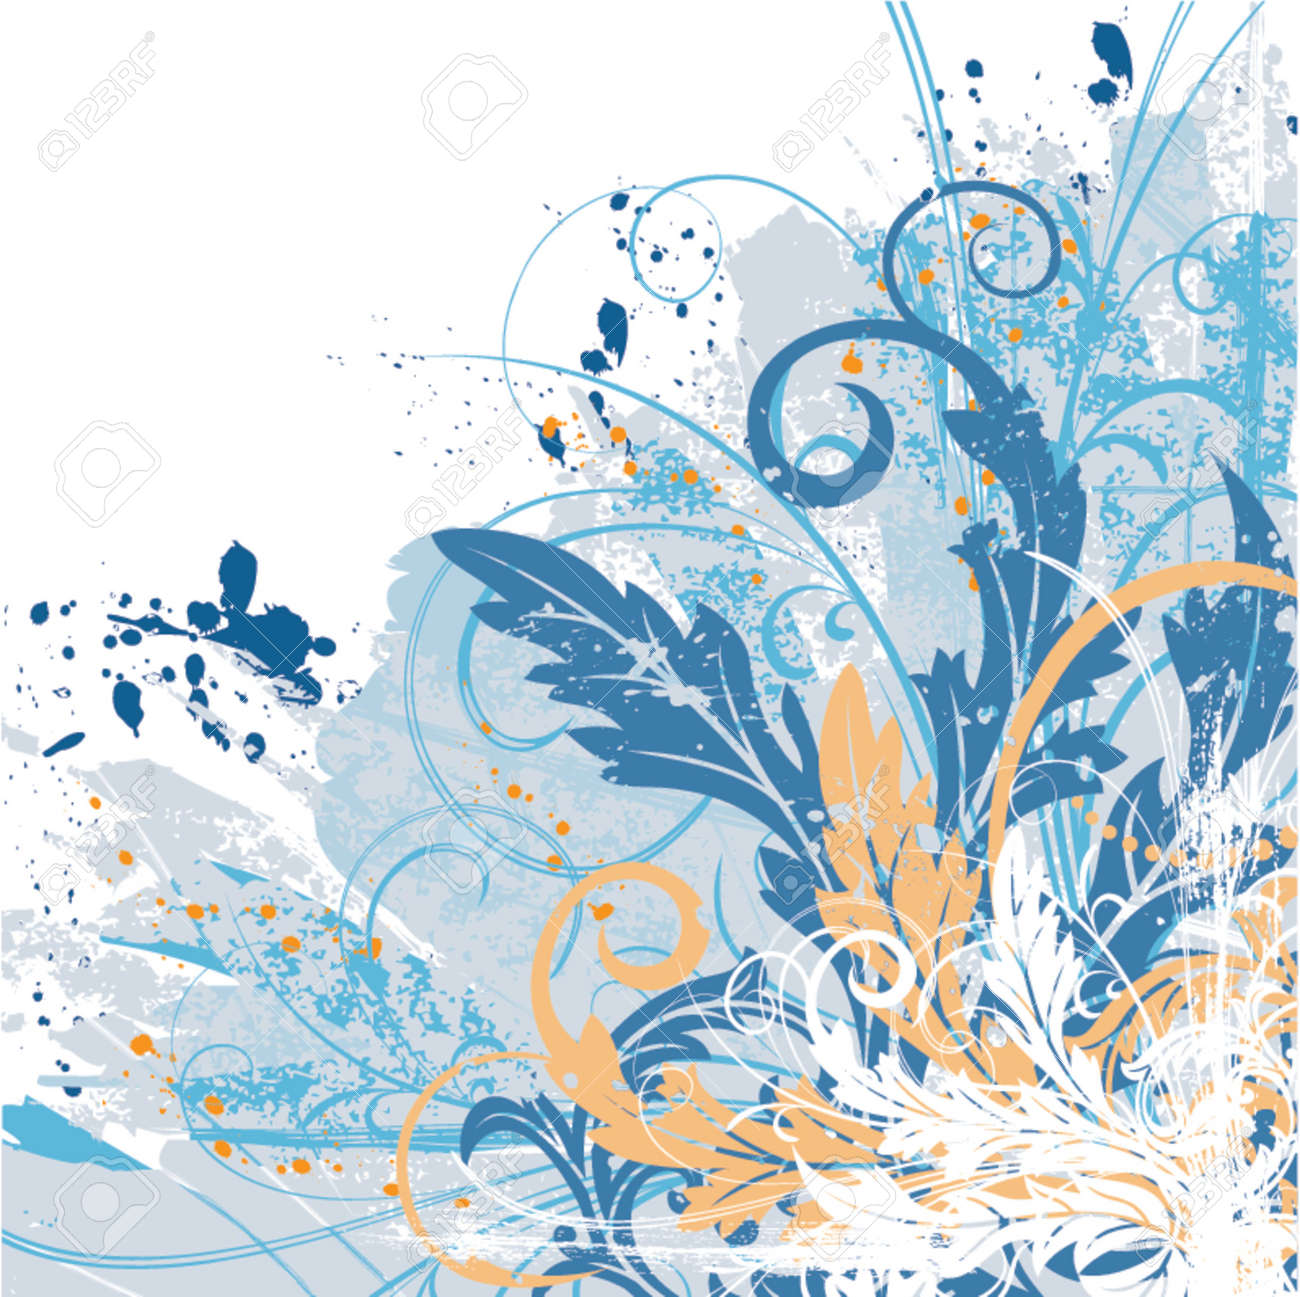 Grunge paint floral chaos, element for design, vector illustration Stock Vector - 826085